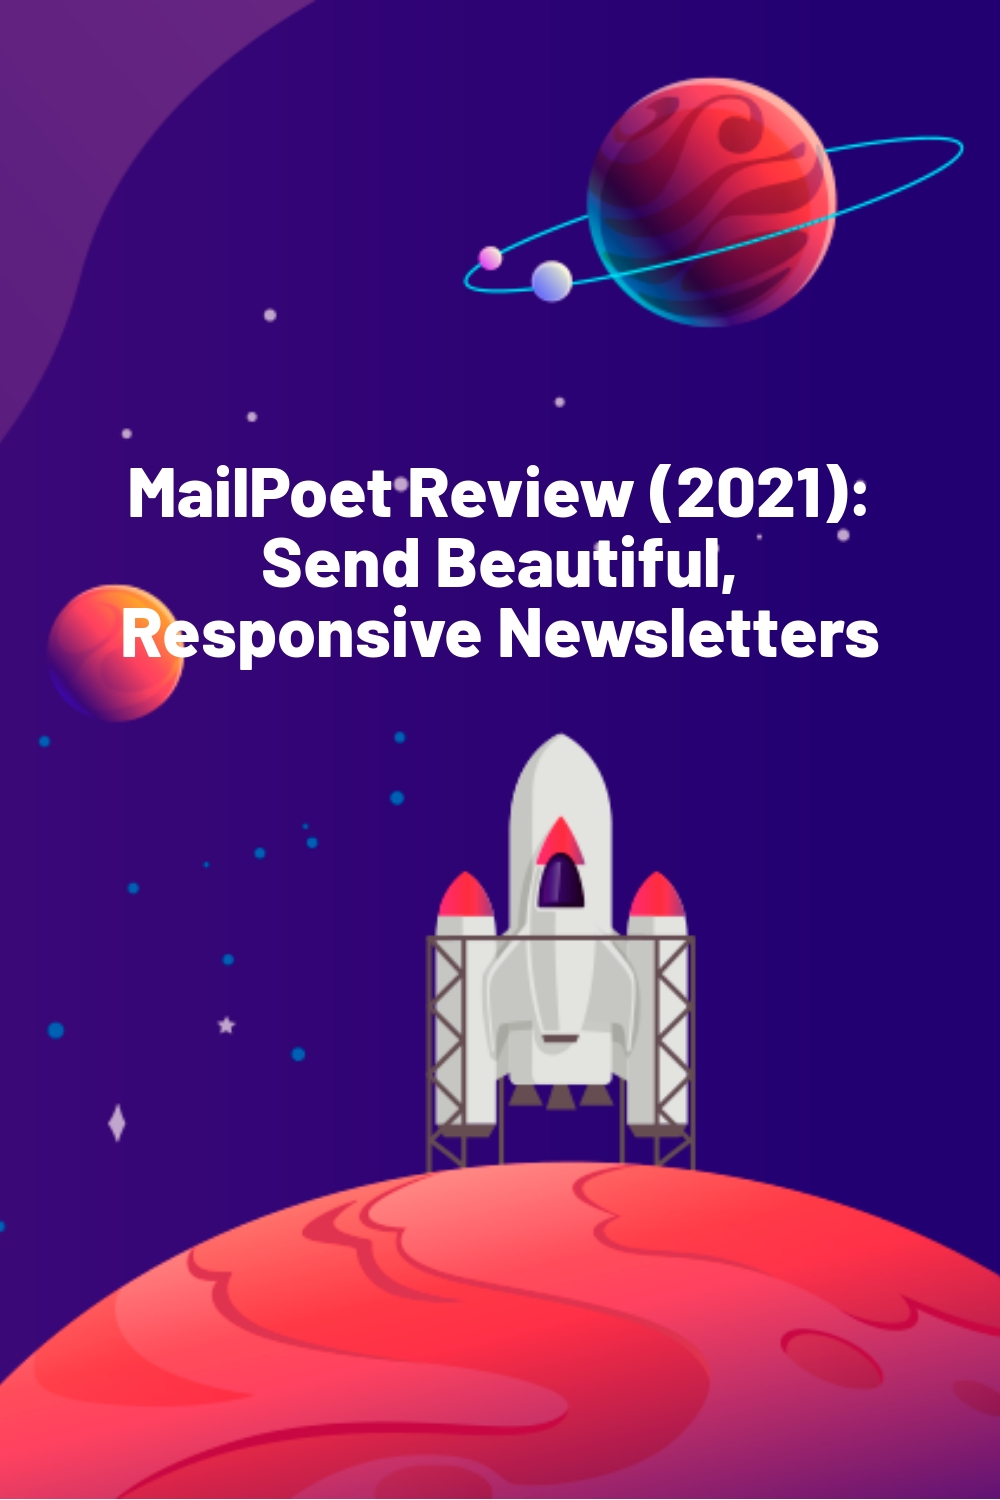 MailPoet Review (2021): Send Beautiful, Responsive Newsletters